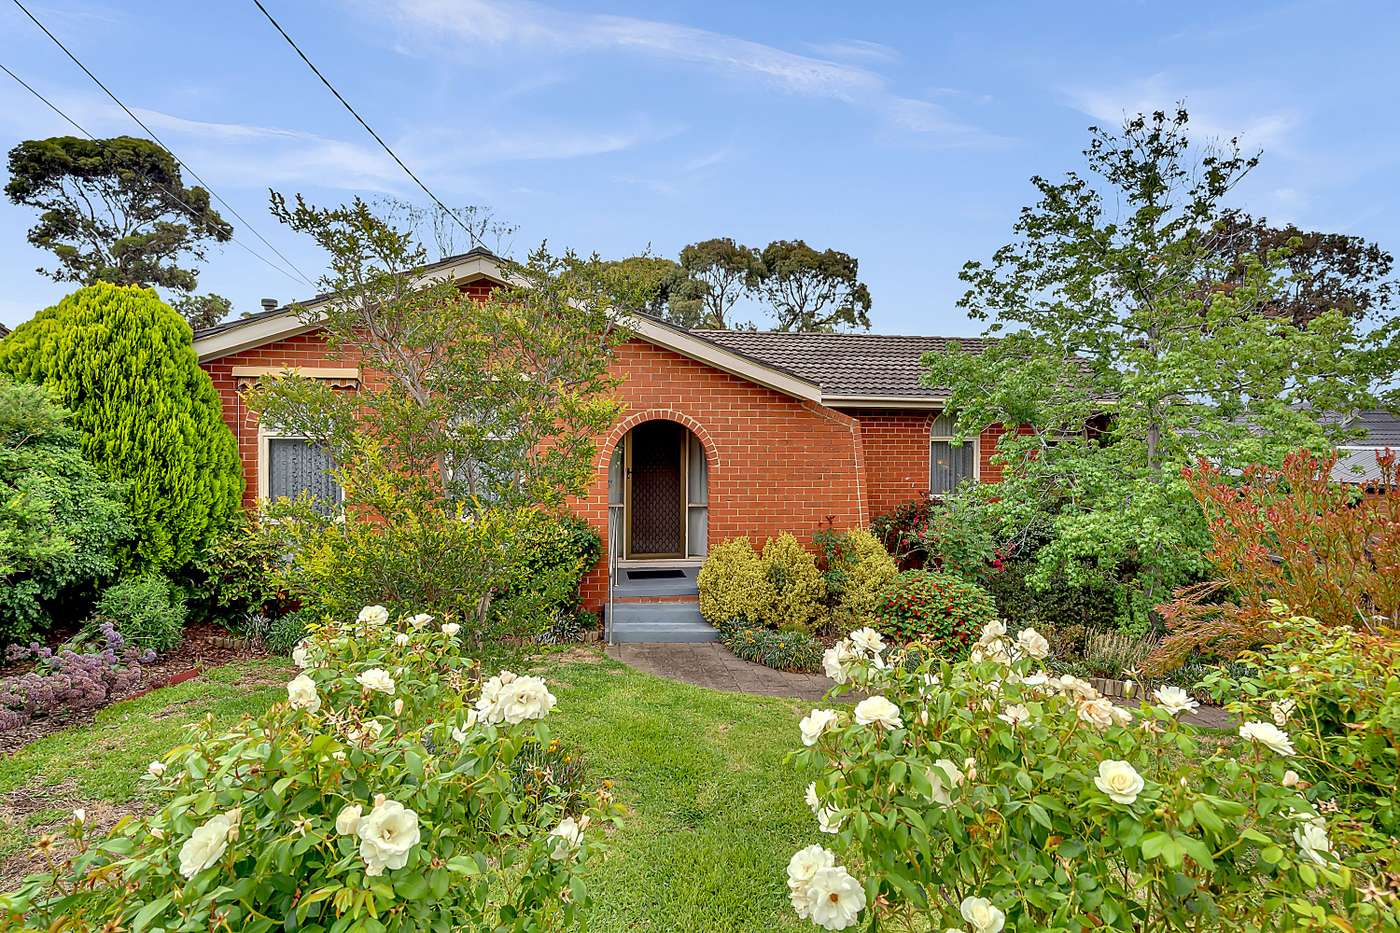 Main view of Homely house listing, 4 Wilton Place, Attwood, VIC 3049